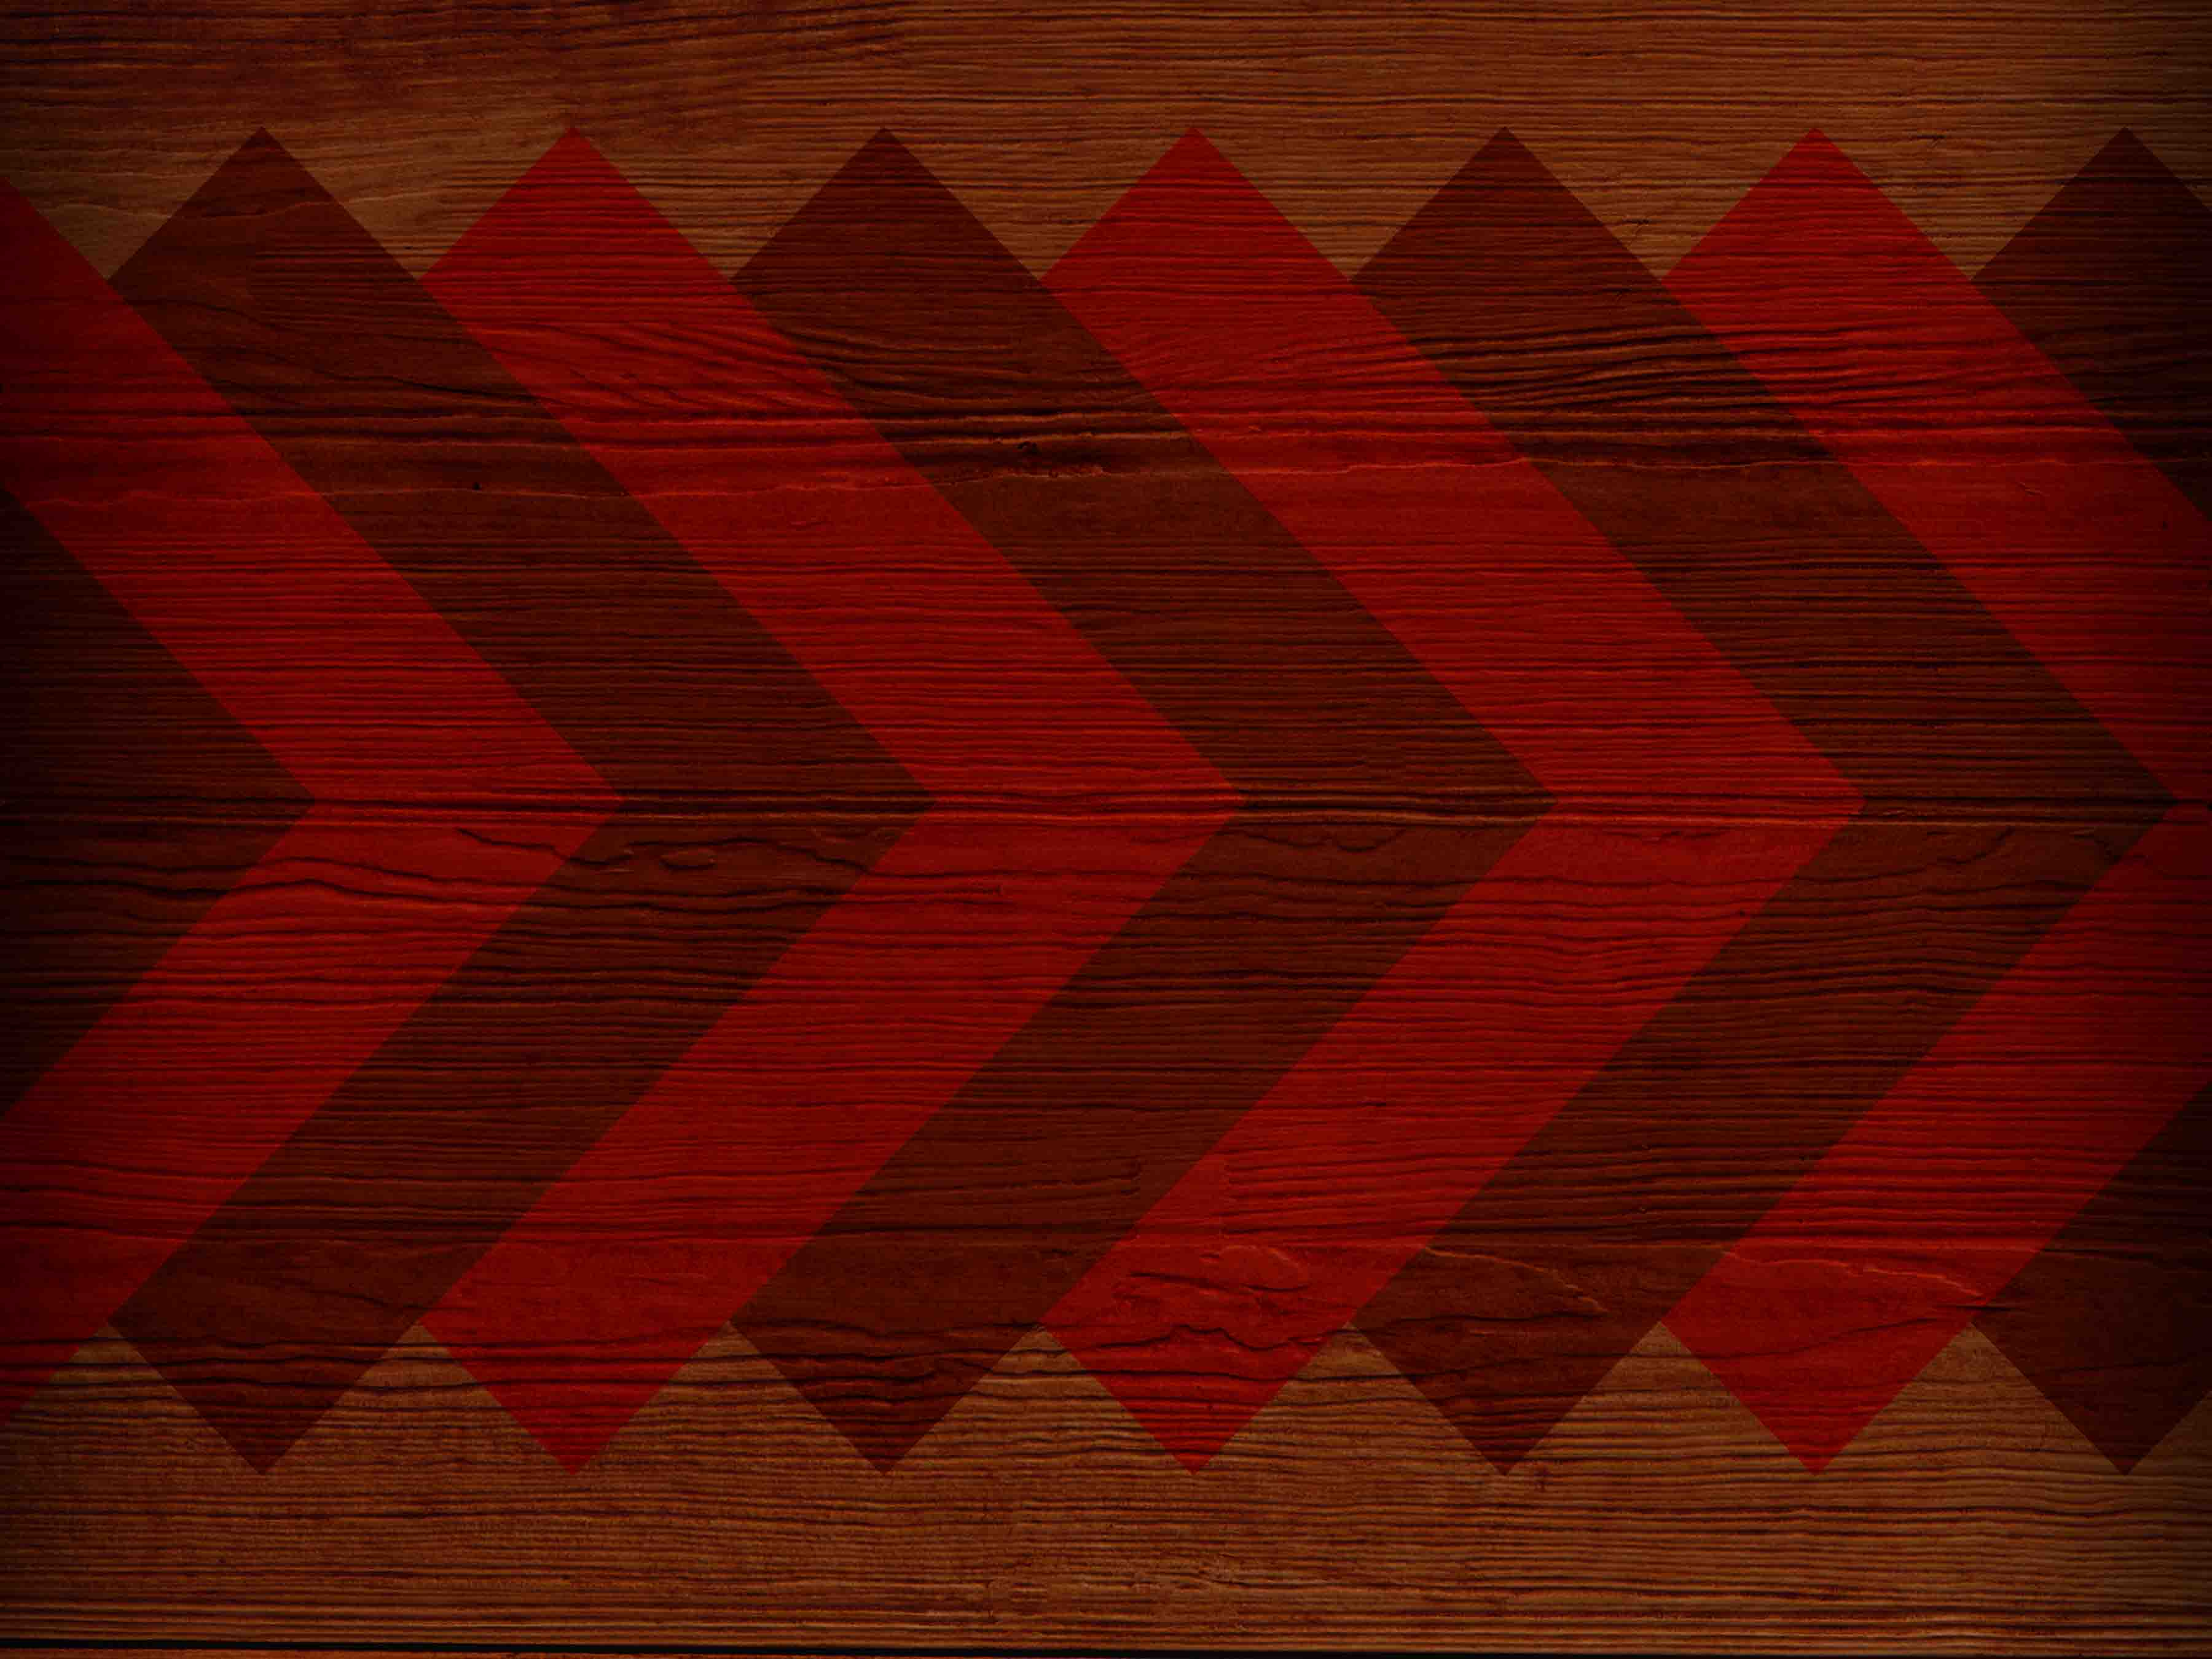 Wood background with red chevron